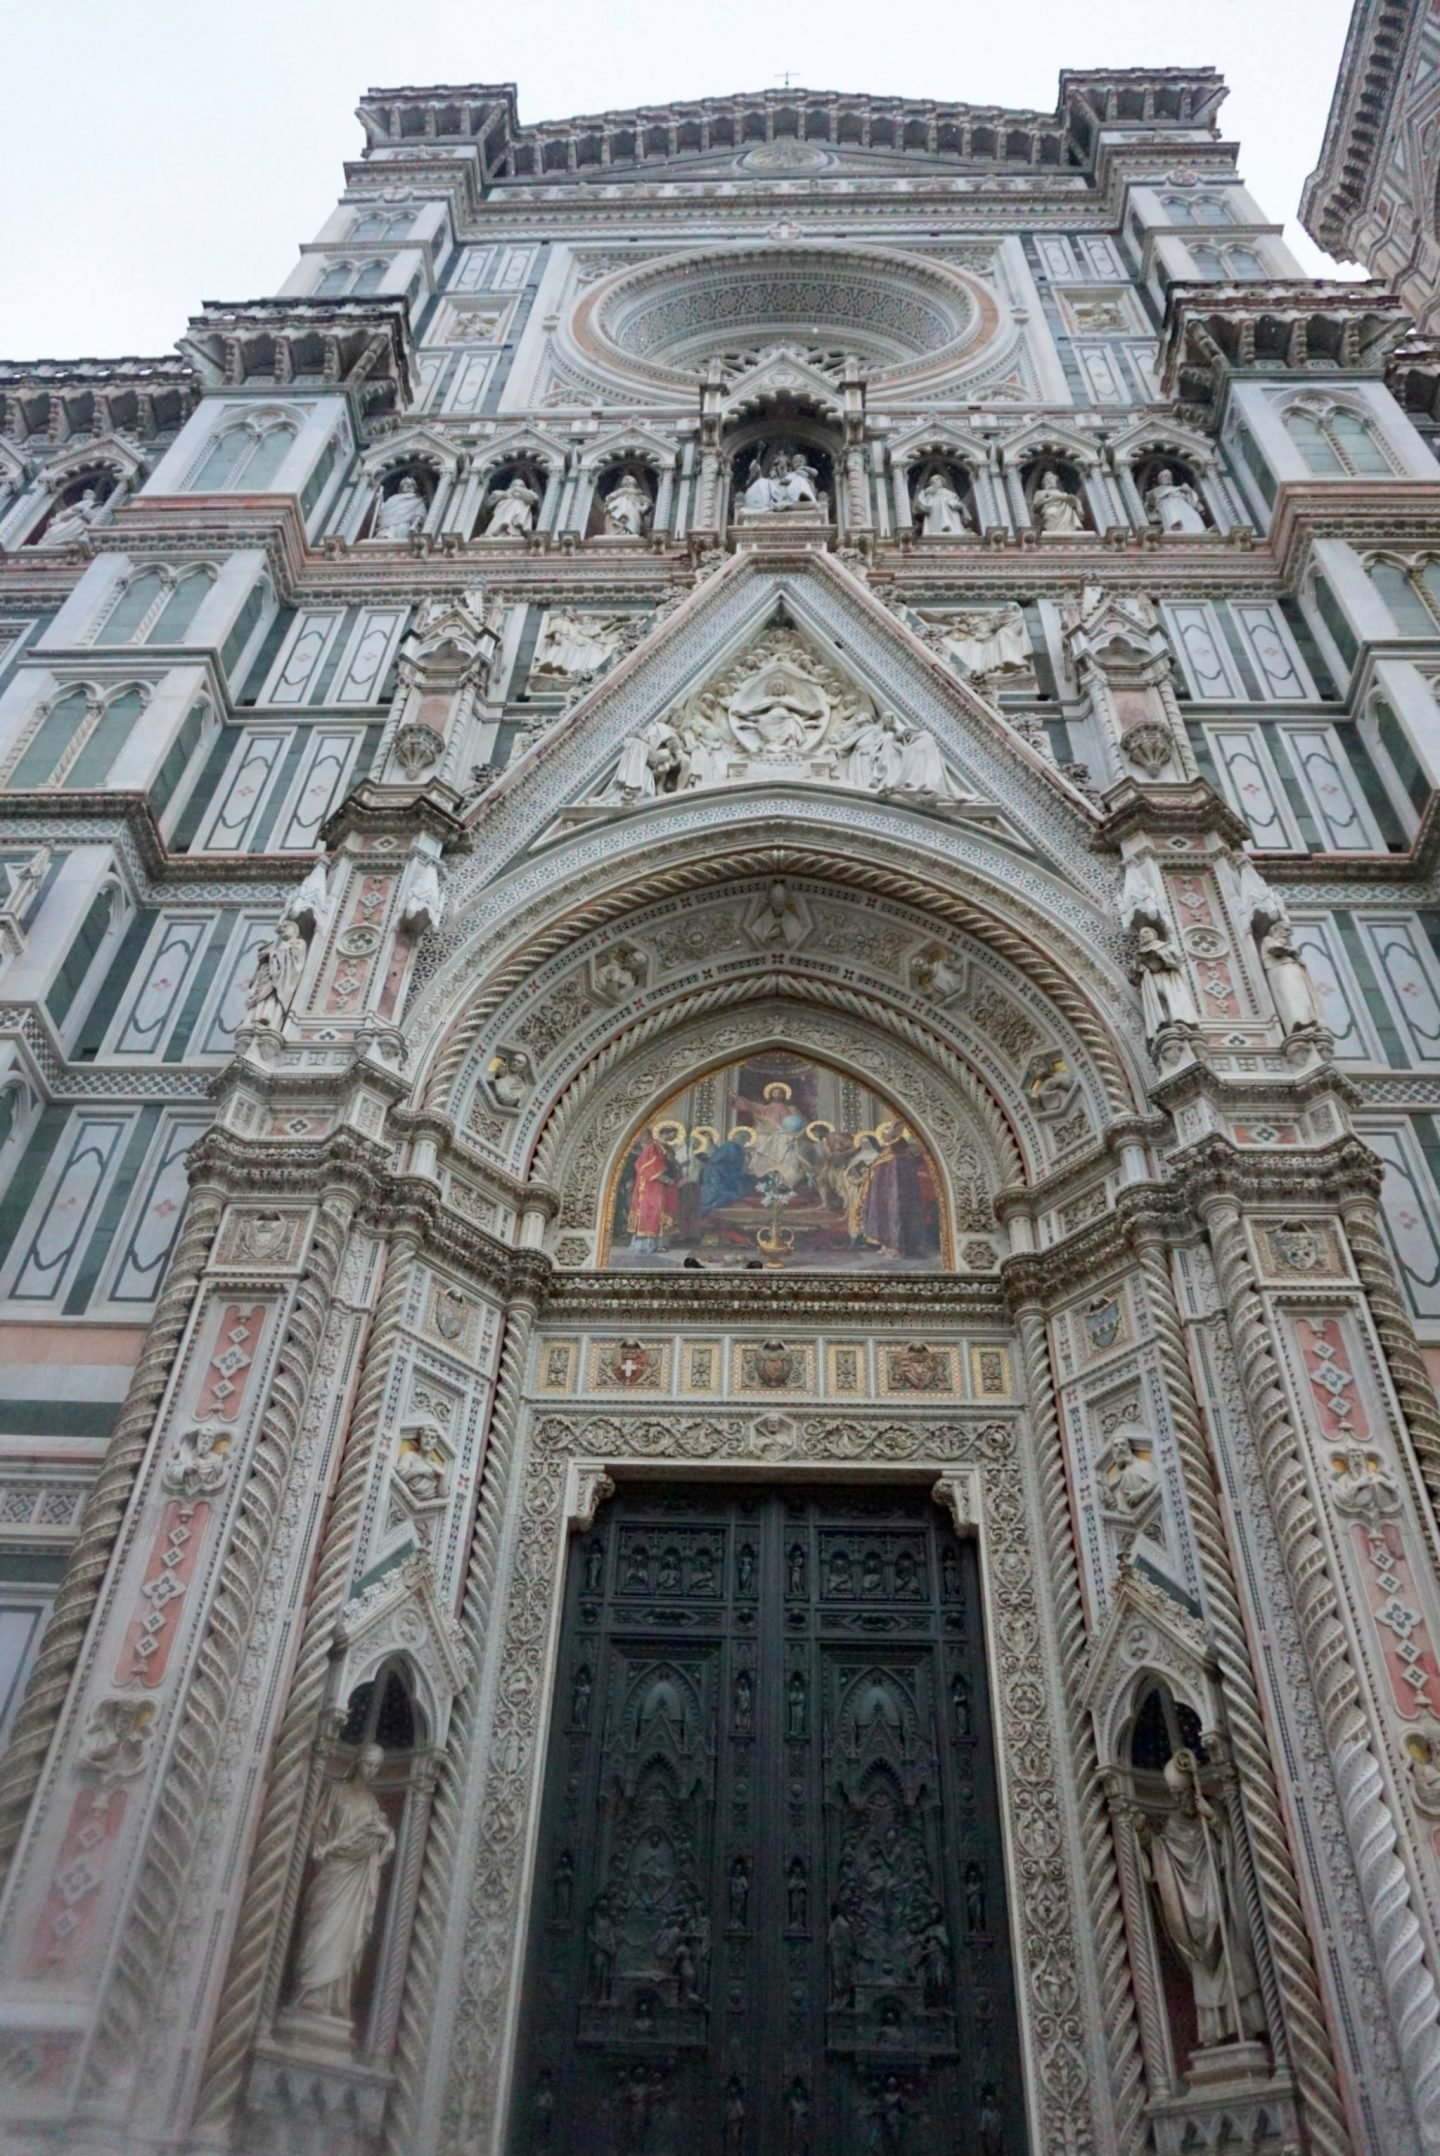 Visiting the Duomo Florence www.extraordianrychoas.com